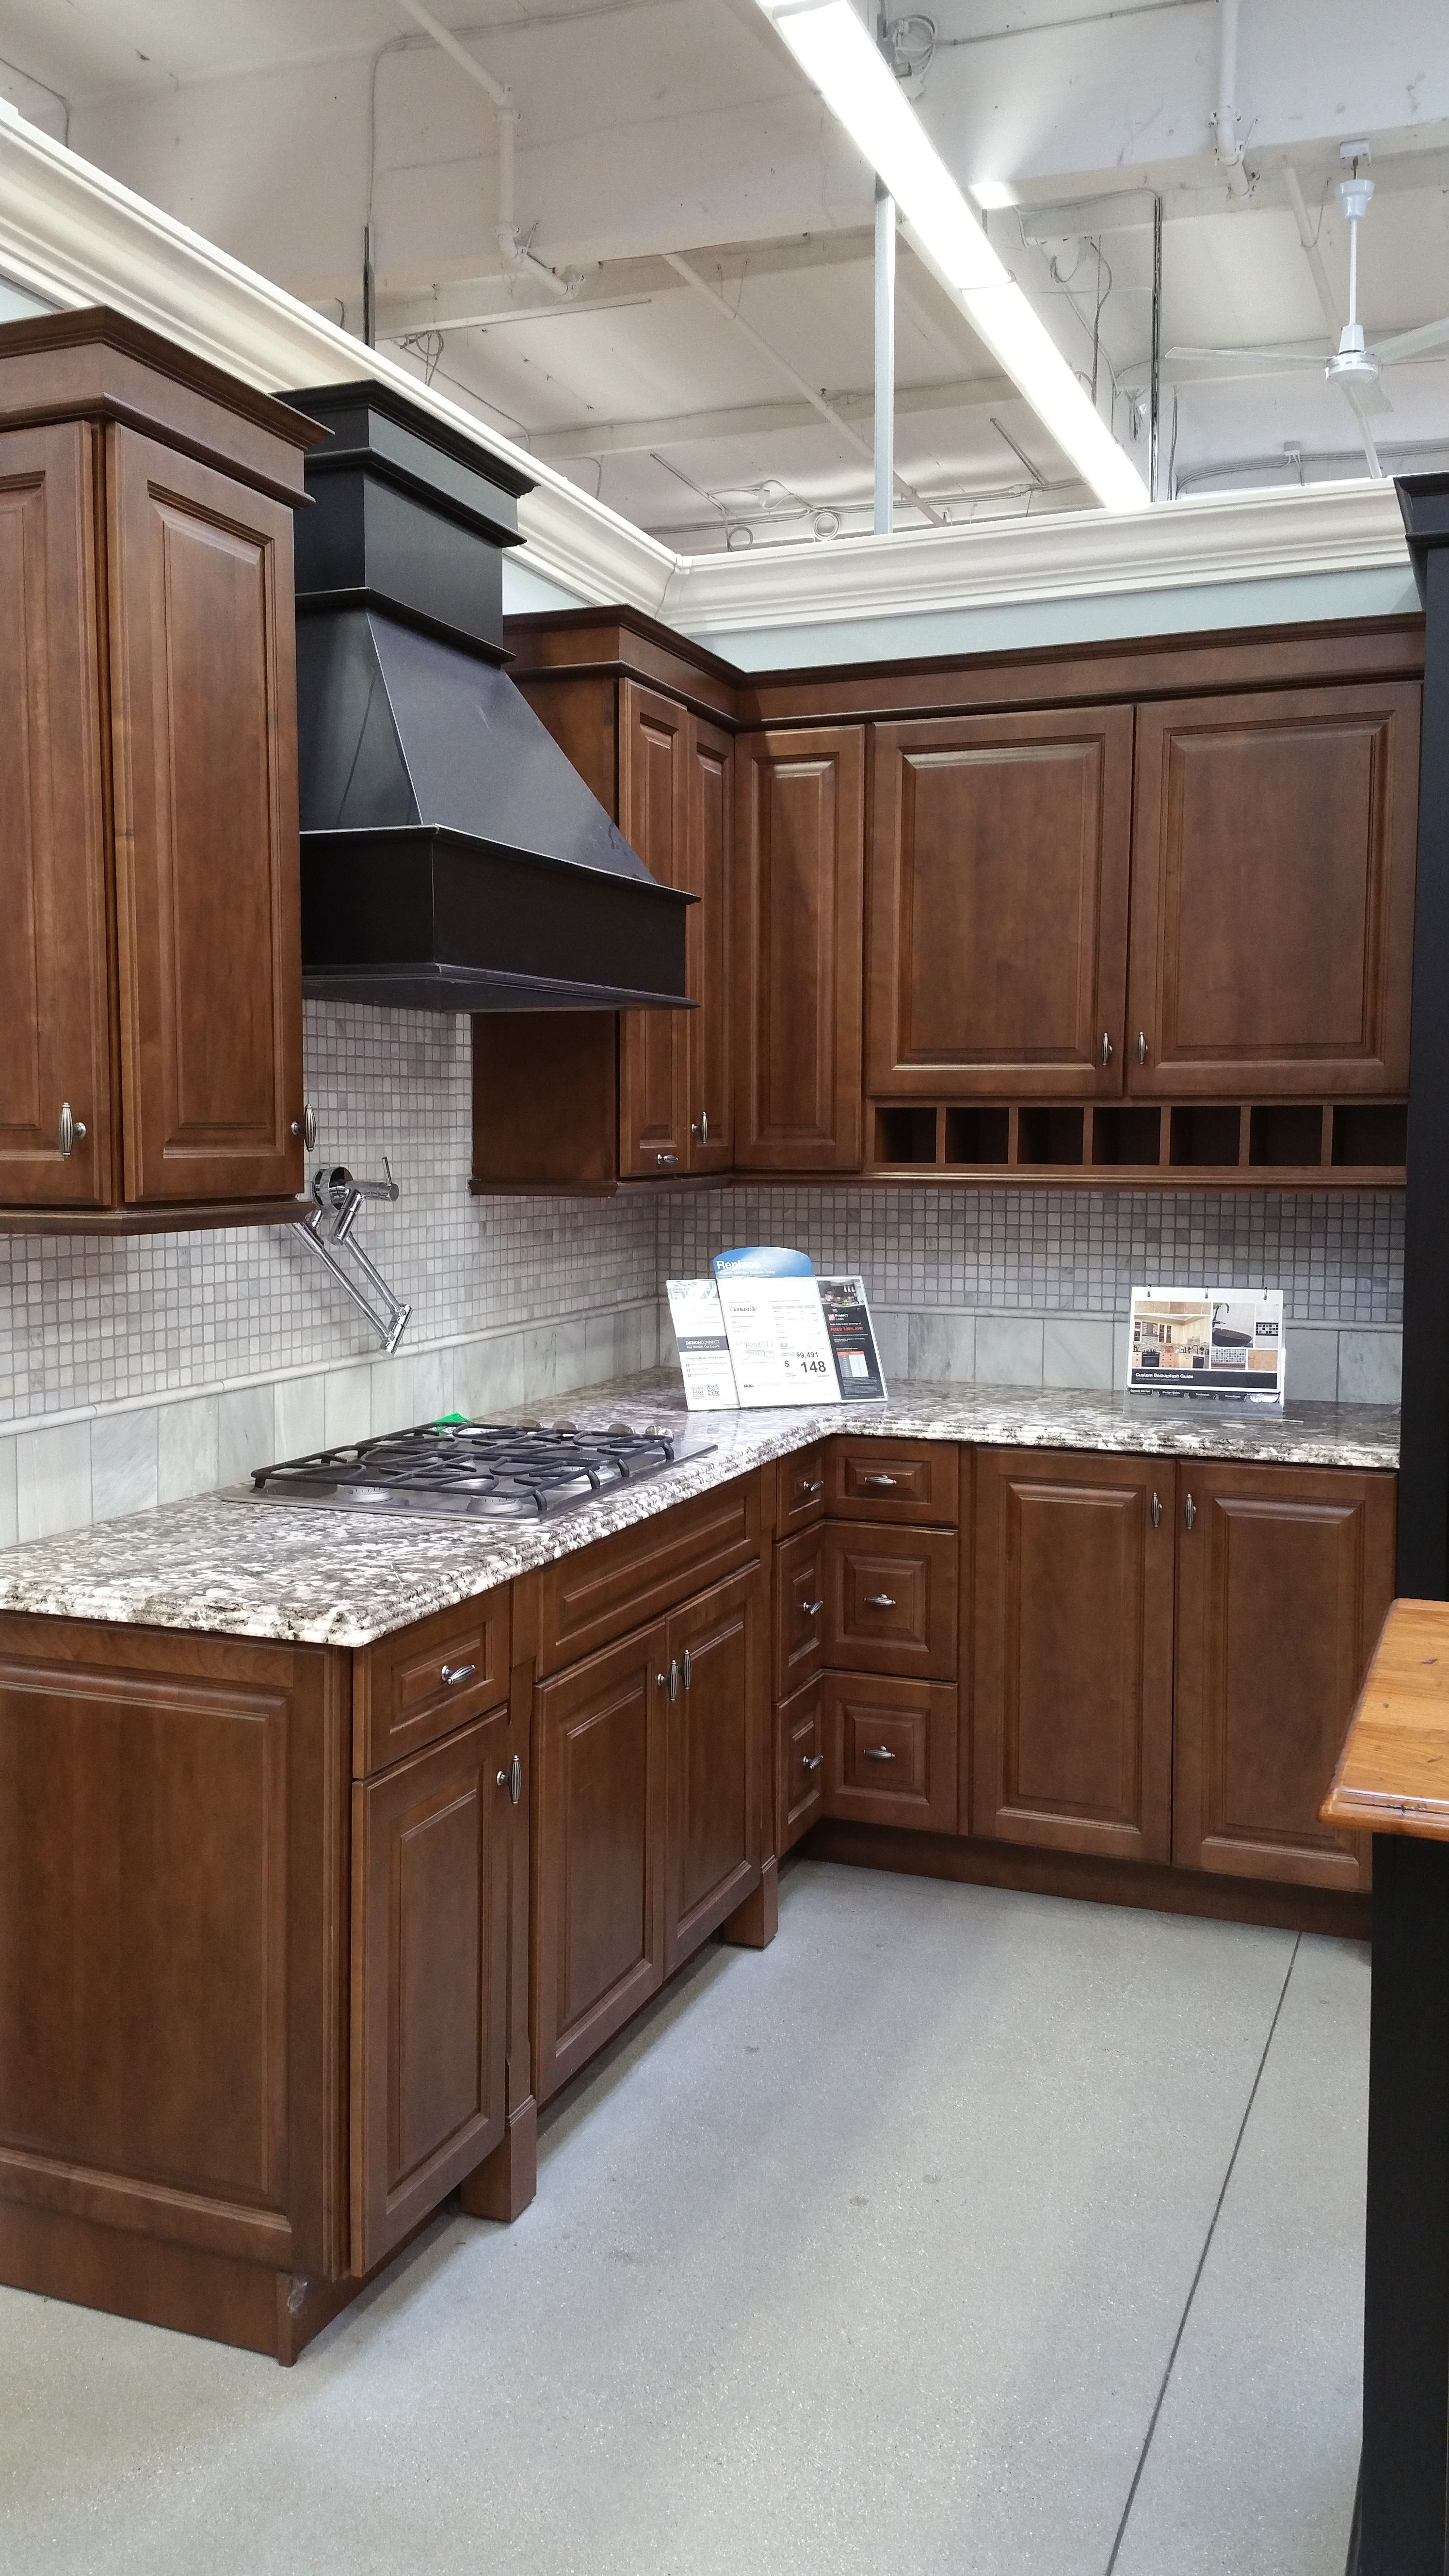 Thomasville Kitchen Cabinets American Standard Porcelain Sink Quotplaza Quot Maple Stained Quotclove My